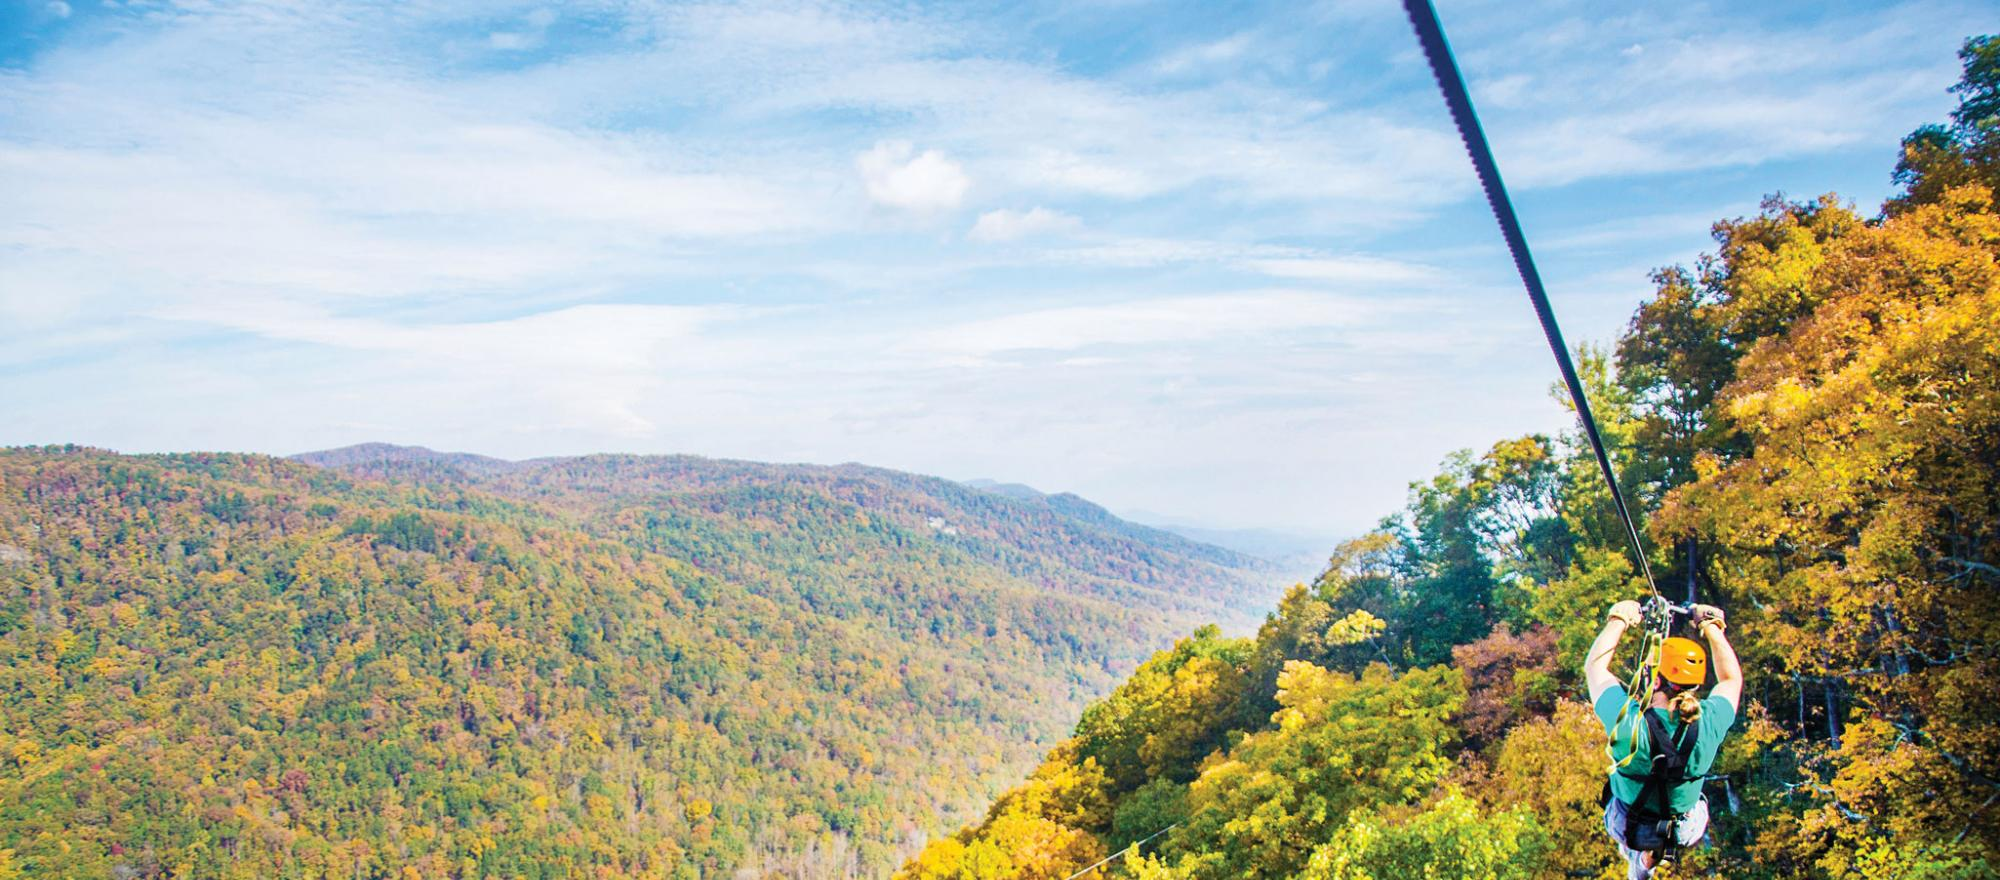 Ziplining provides stunning views in all seasons. (Photo: The Gorge Zipline)